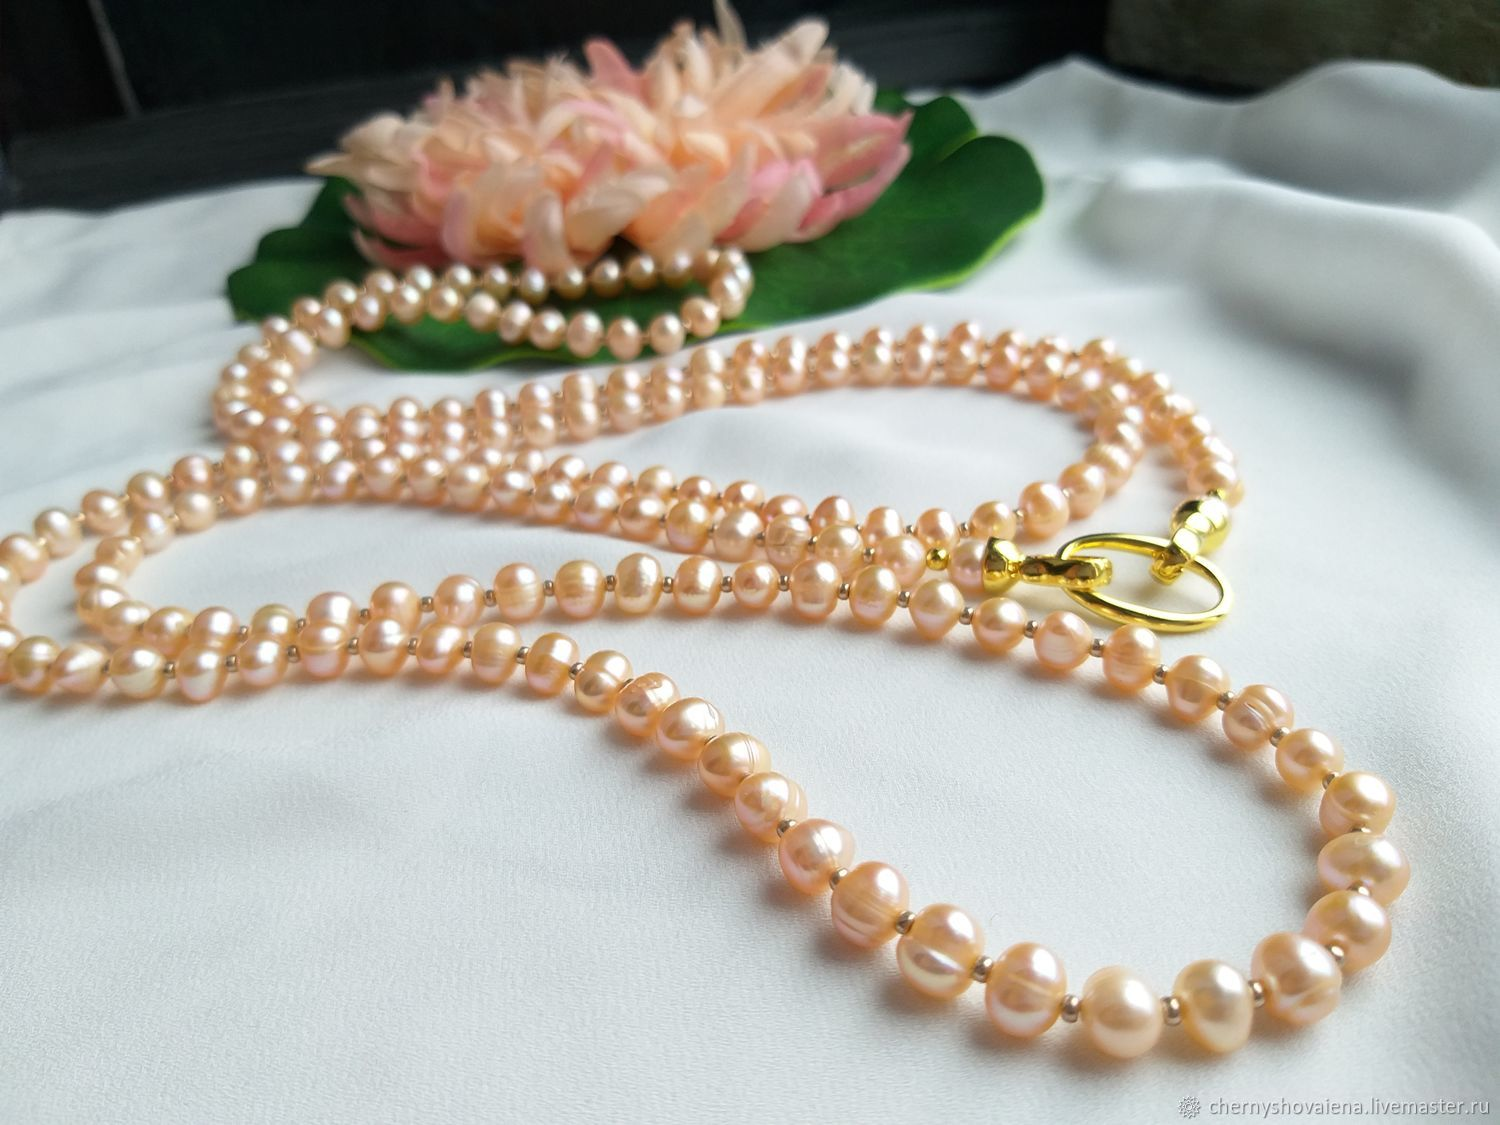 150 cm long transformer beads made of peach pearls, Necklace, Moscow,  Фото №1